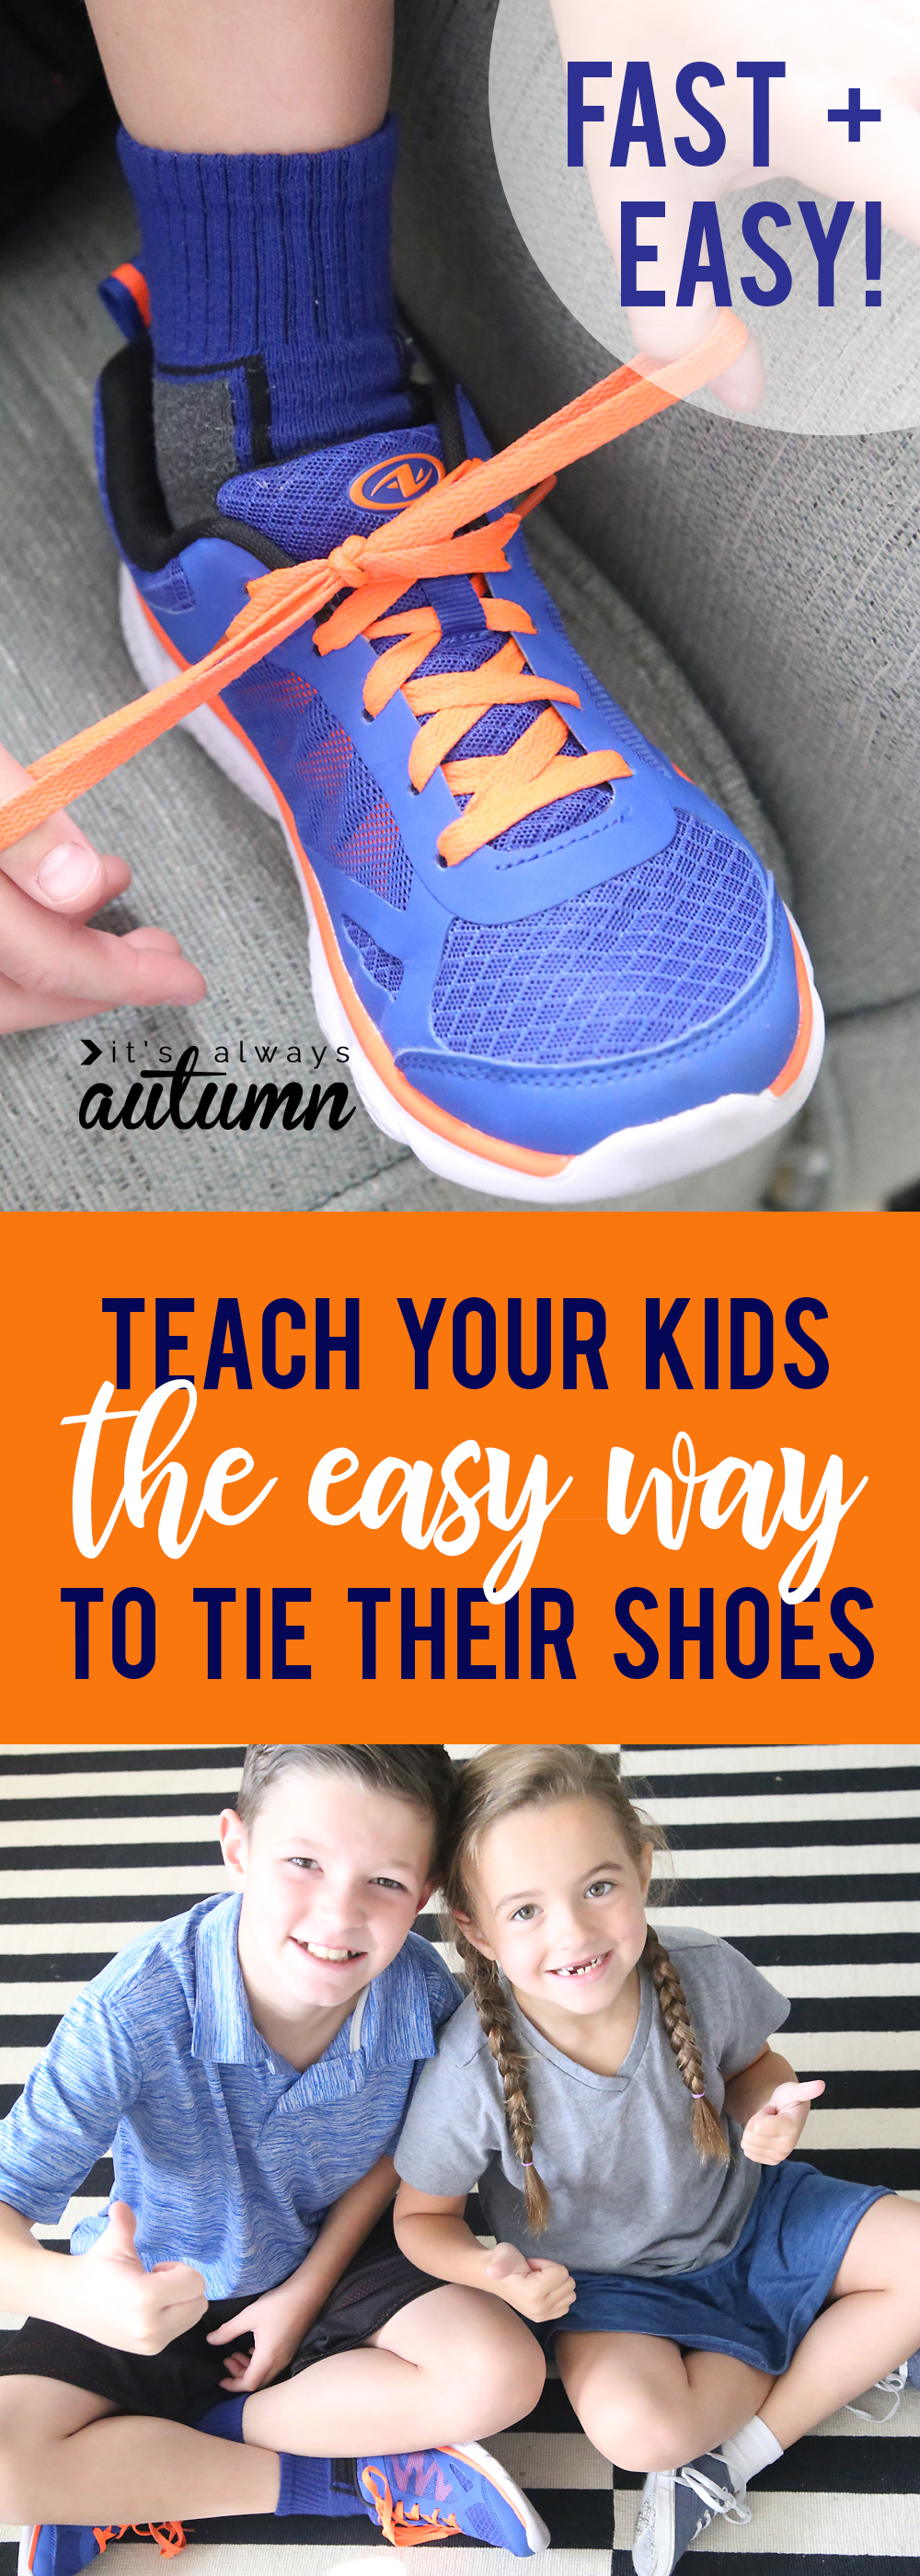 the fast easy hack to tie your shoes it s always autumn